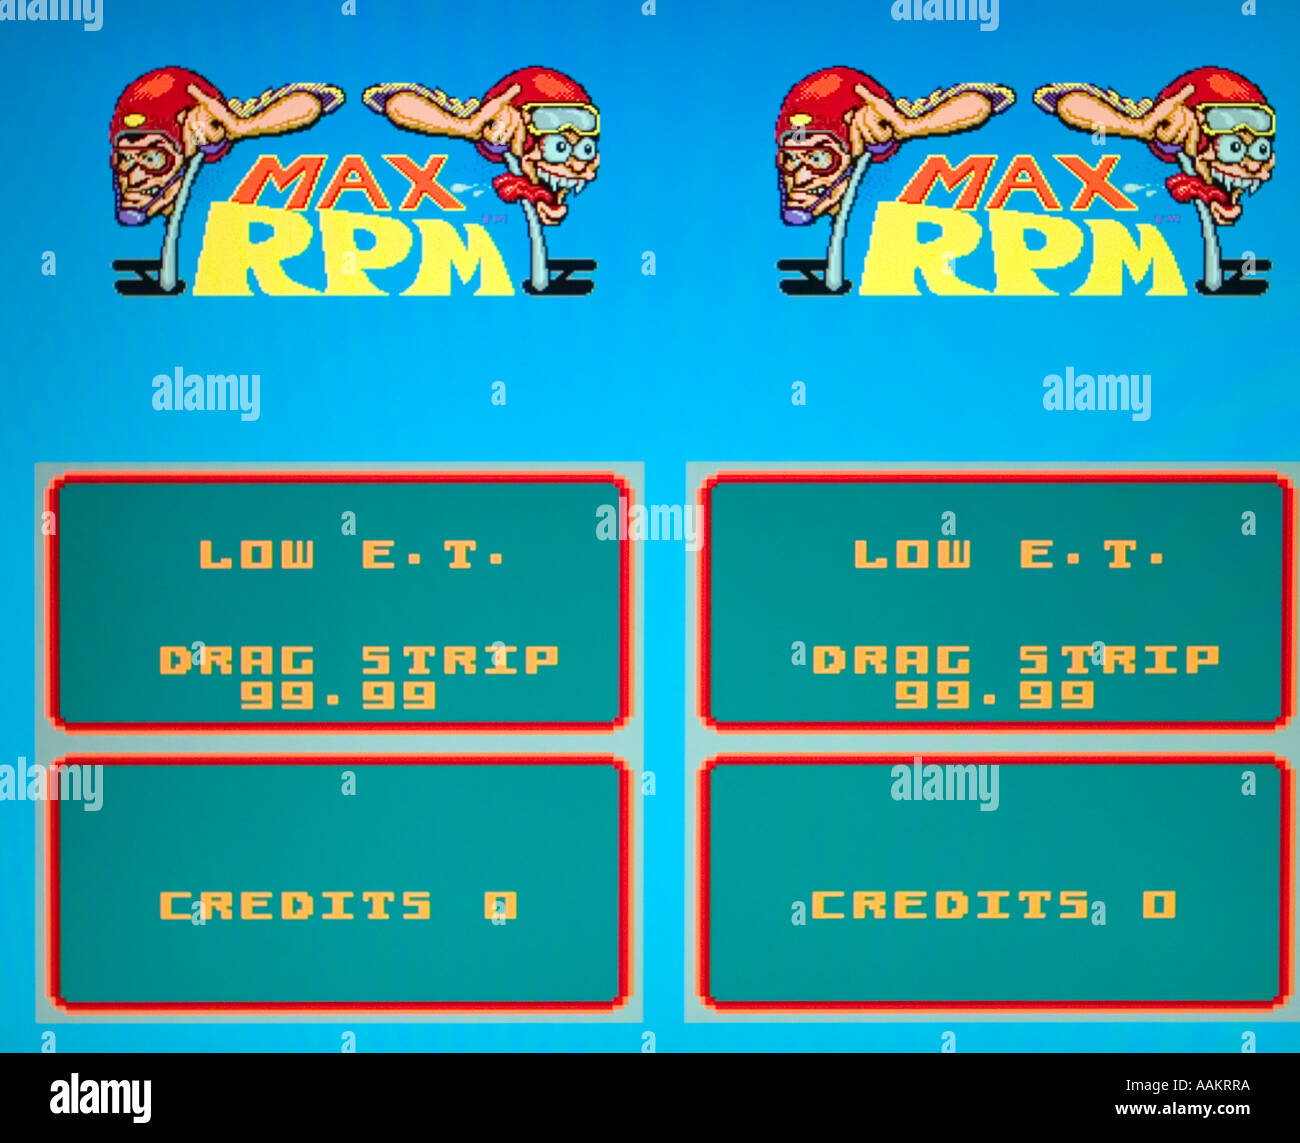 Max RPM Bally Midway 1986 vintage arcade videogame screenshot - EDITORIAL USE ONLY - Stock Image